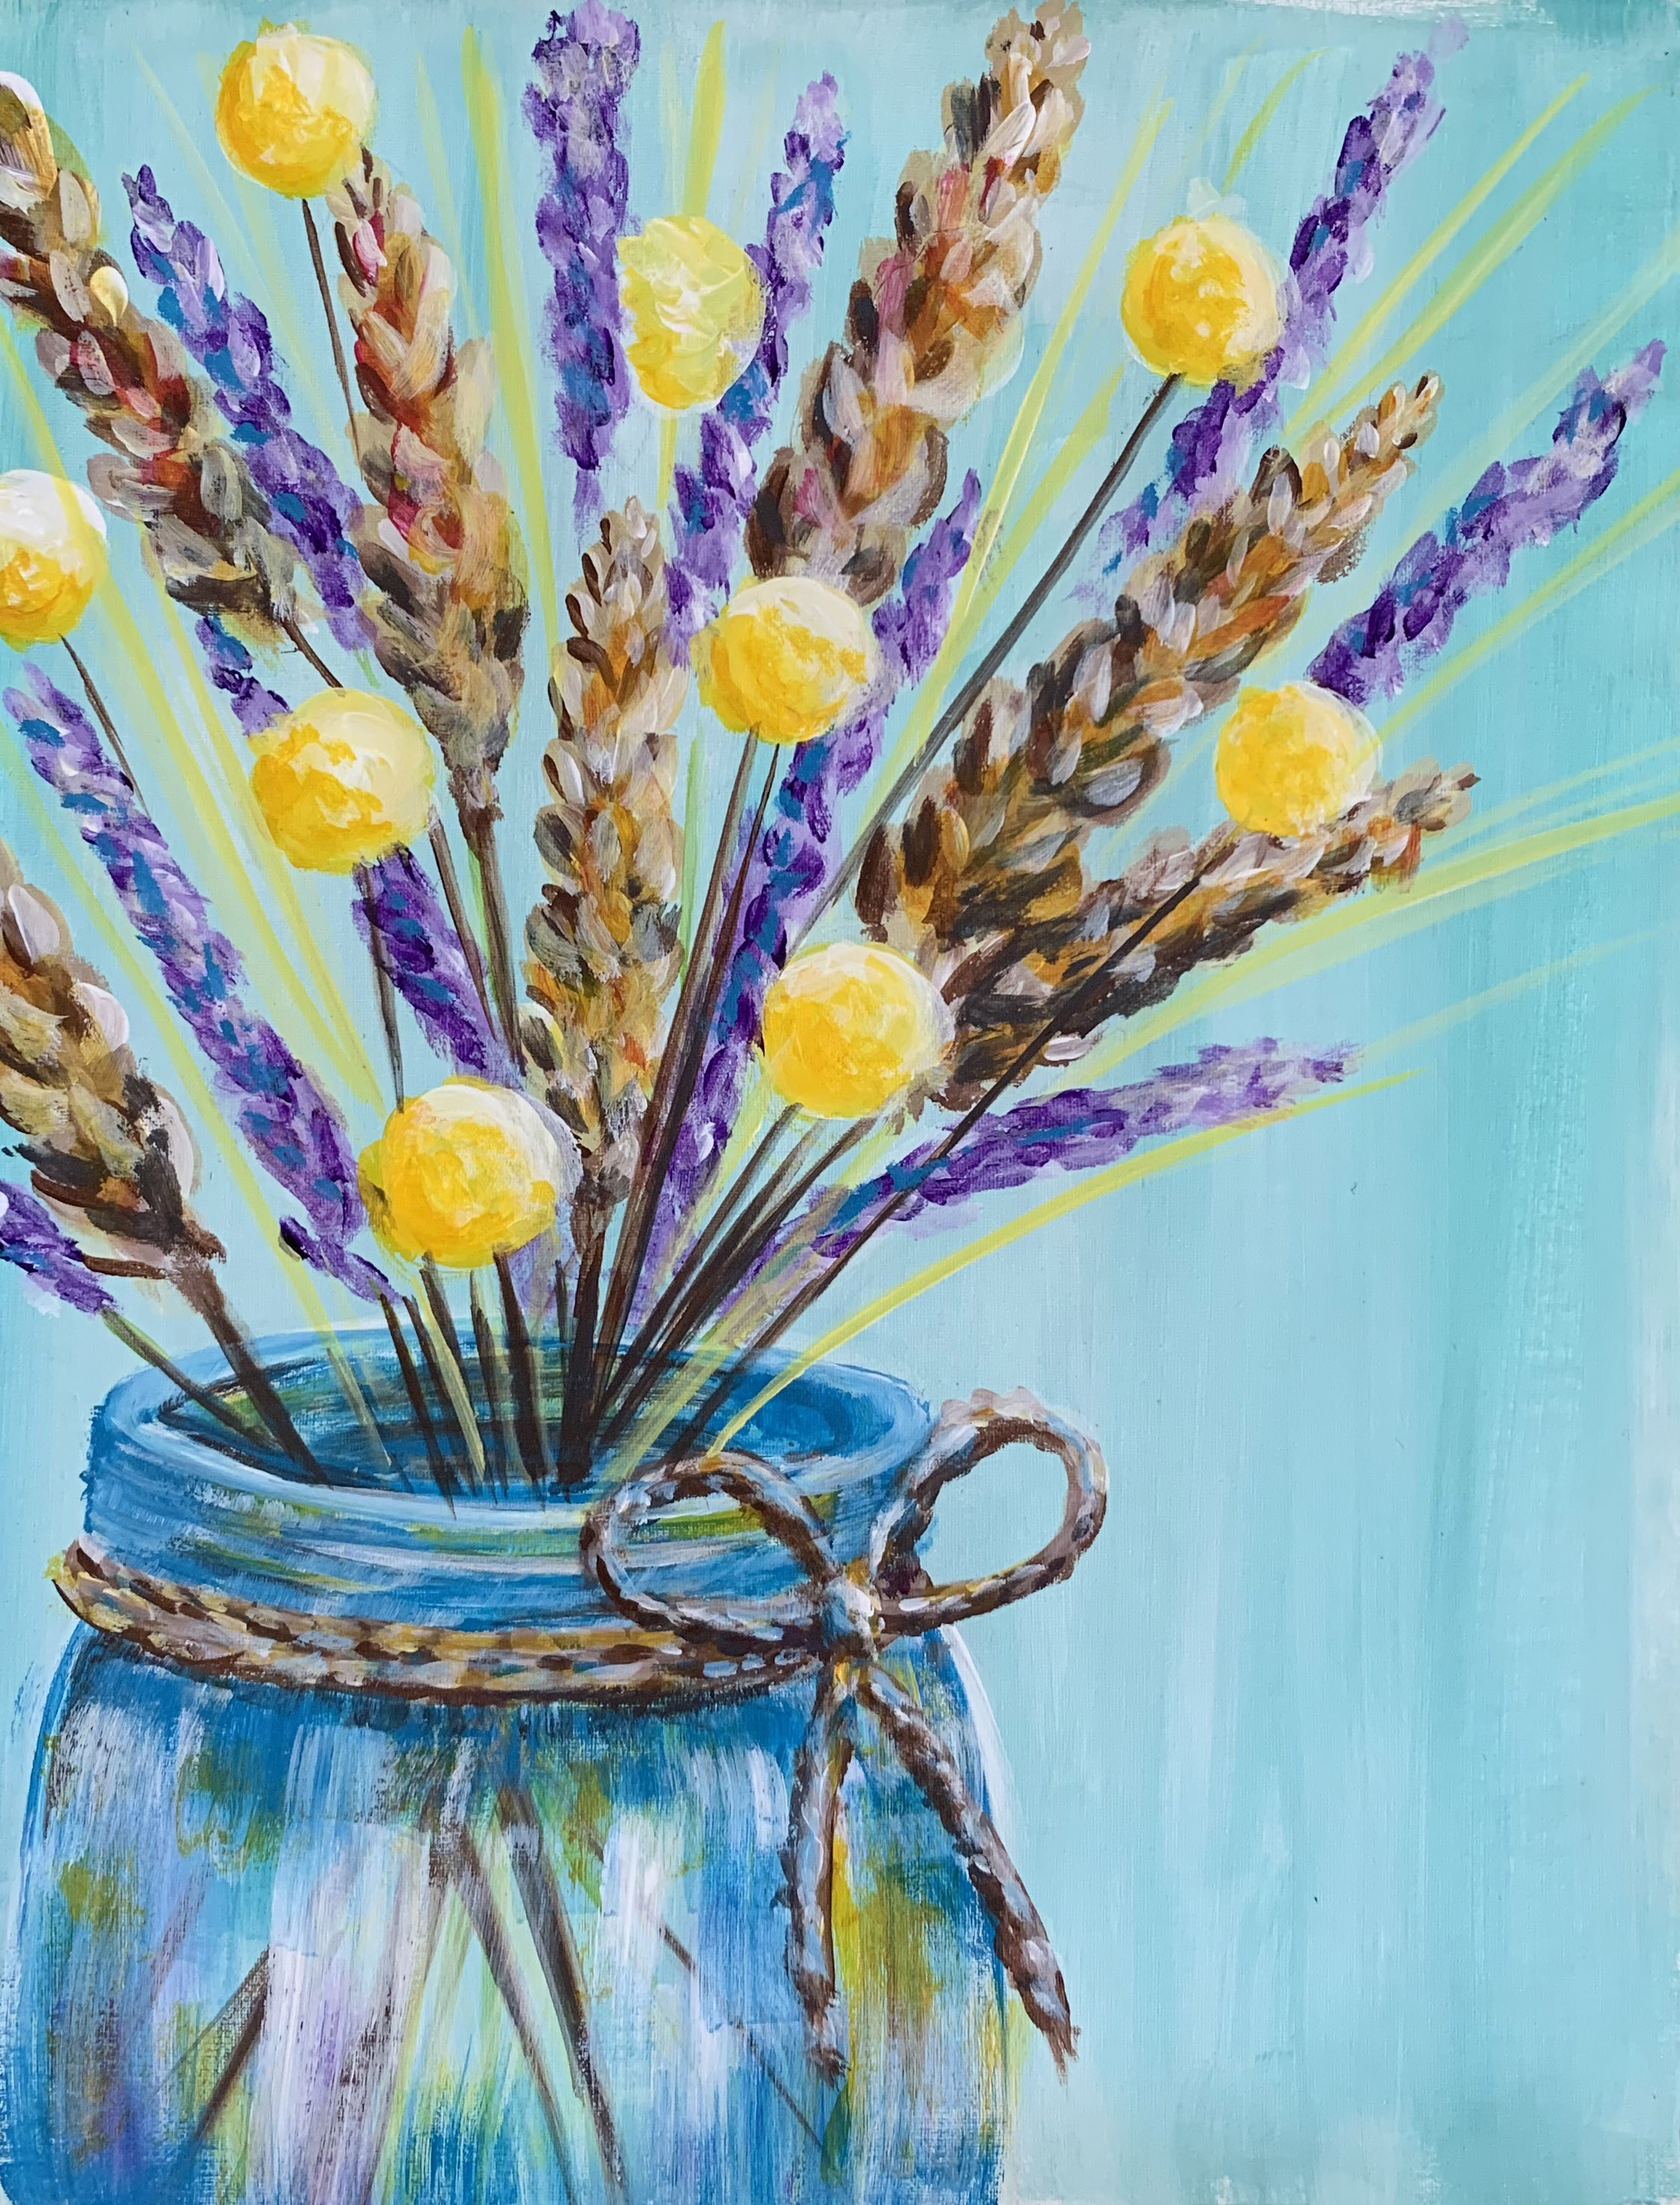 A Lavender and Wheat bouquet experience project by Yaymaker